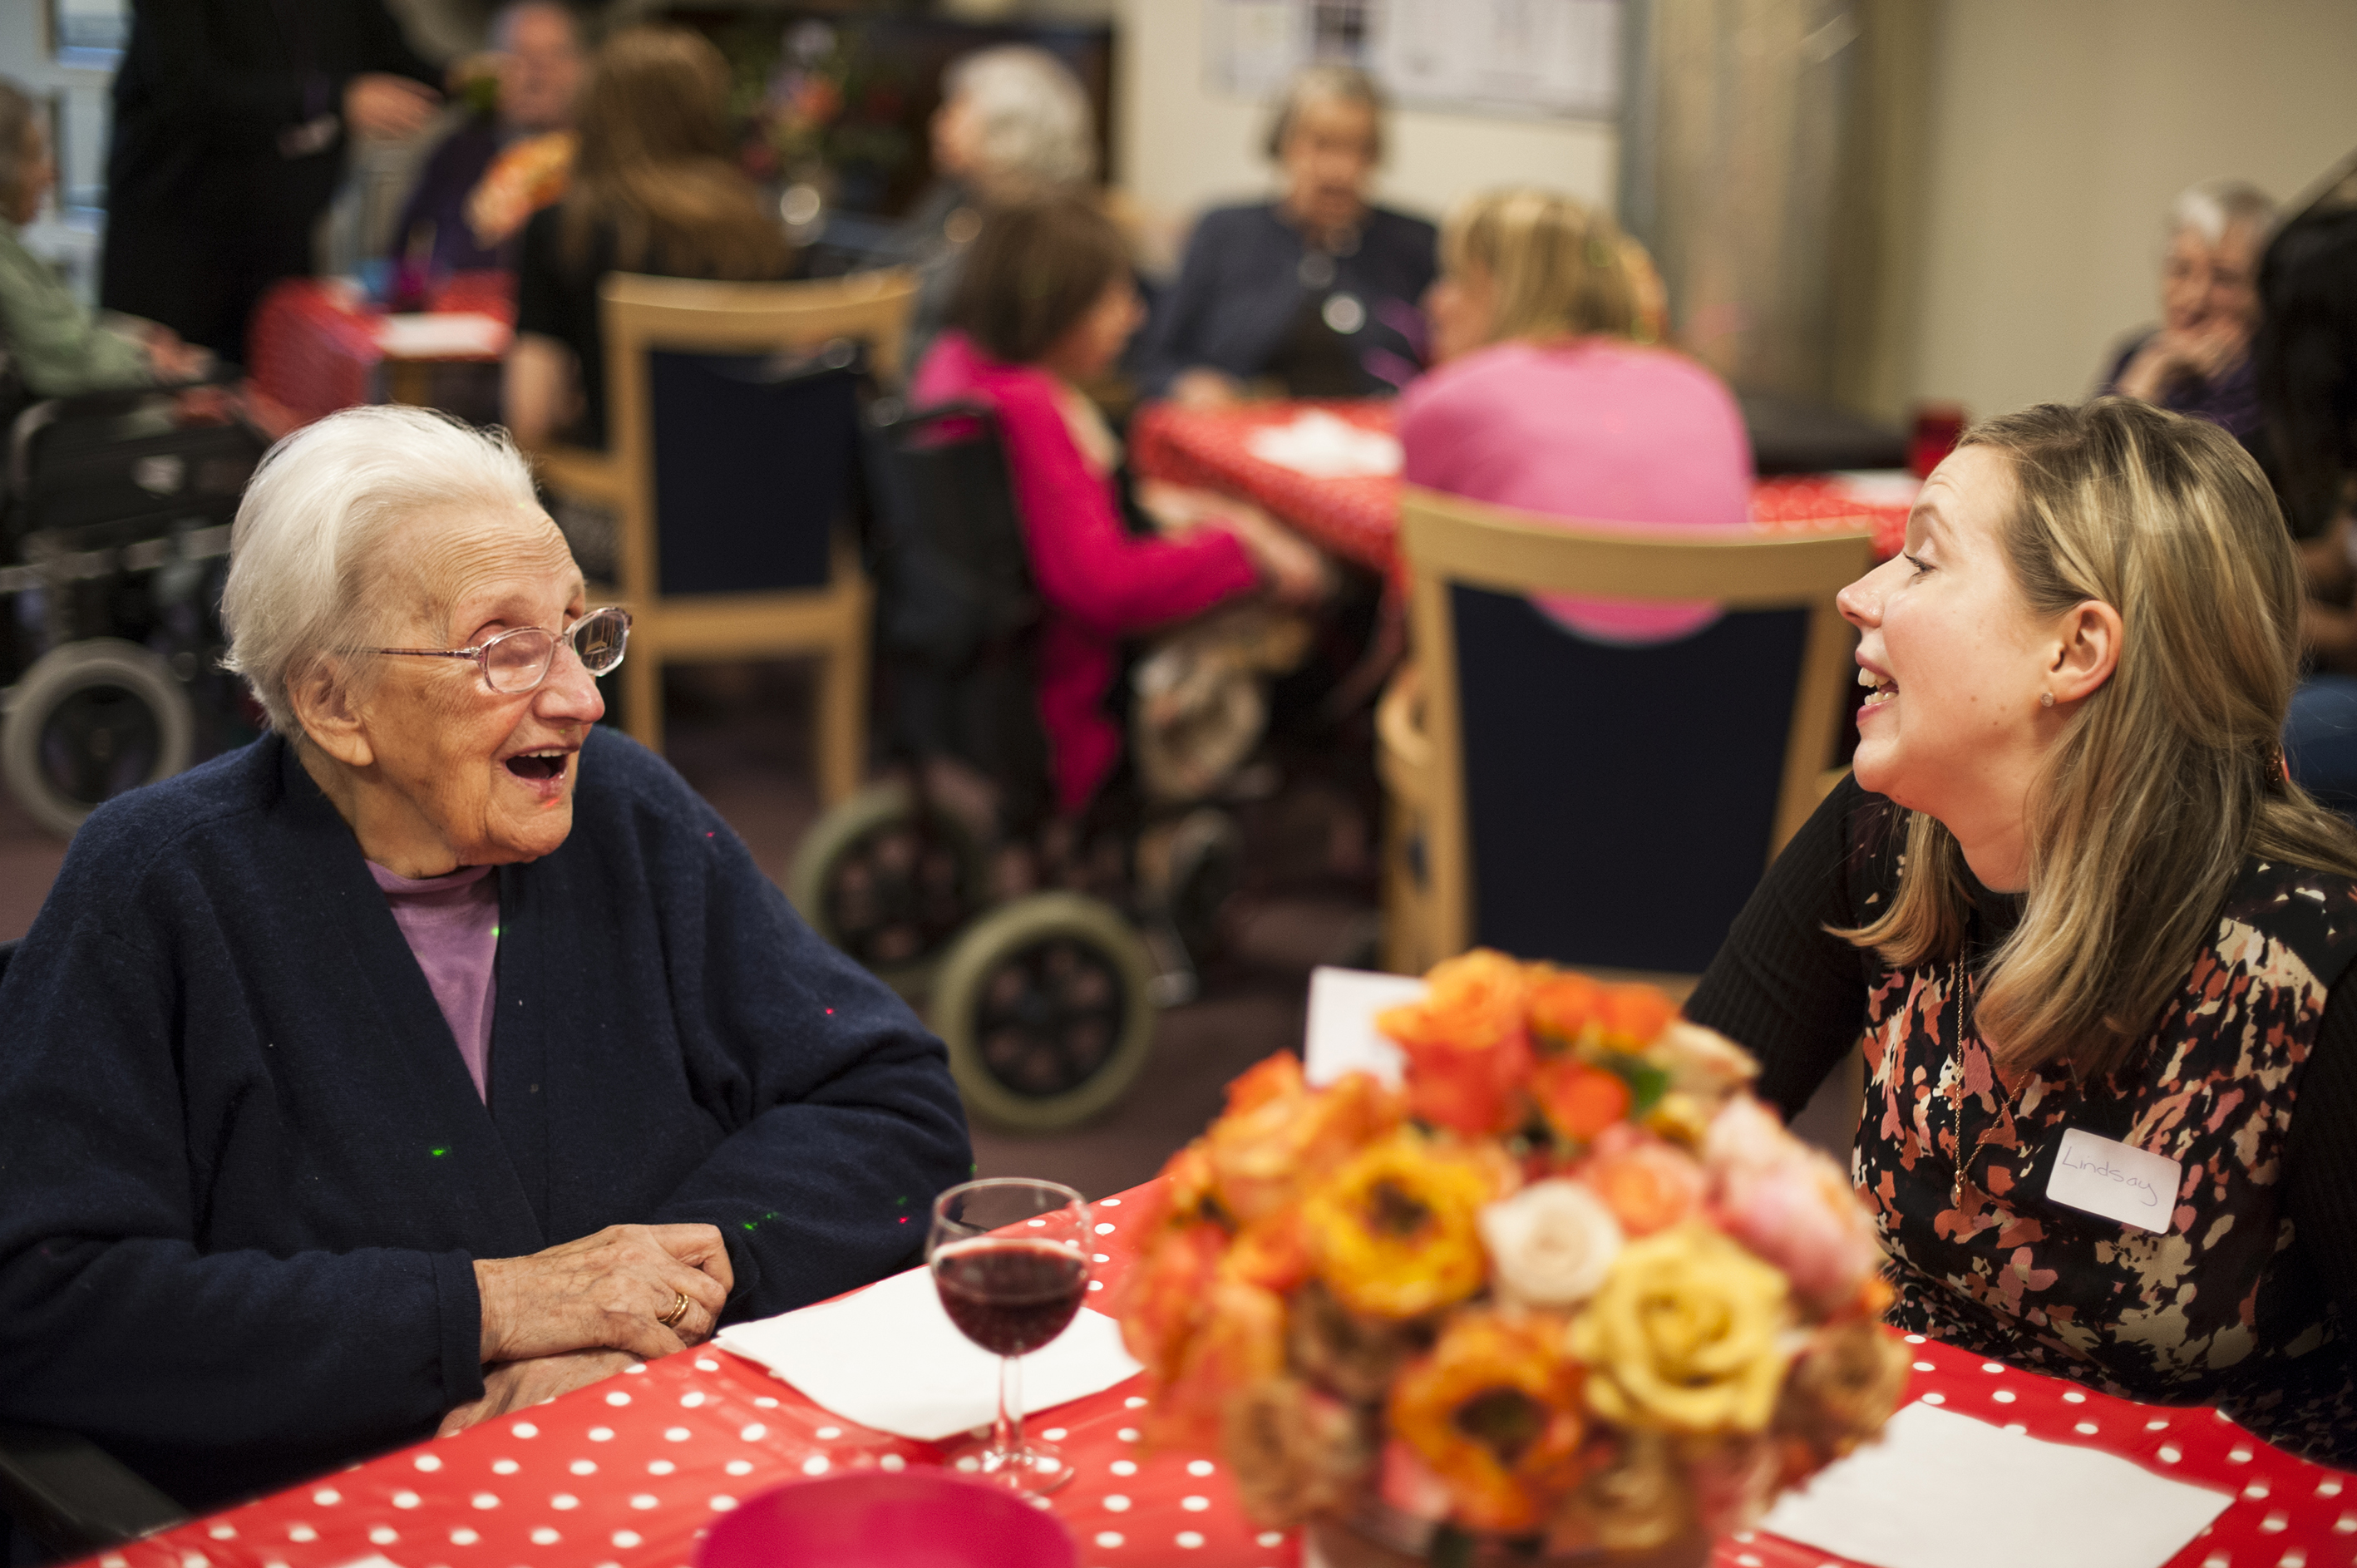 Happy female resident & volunteer chat with orange flowers on table